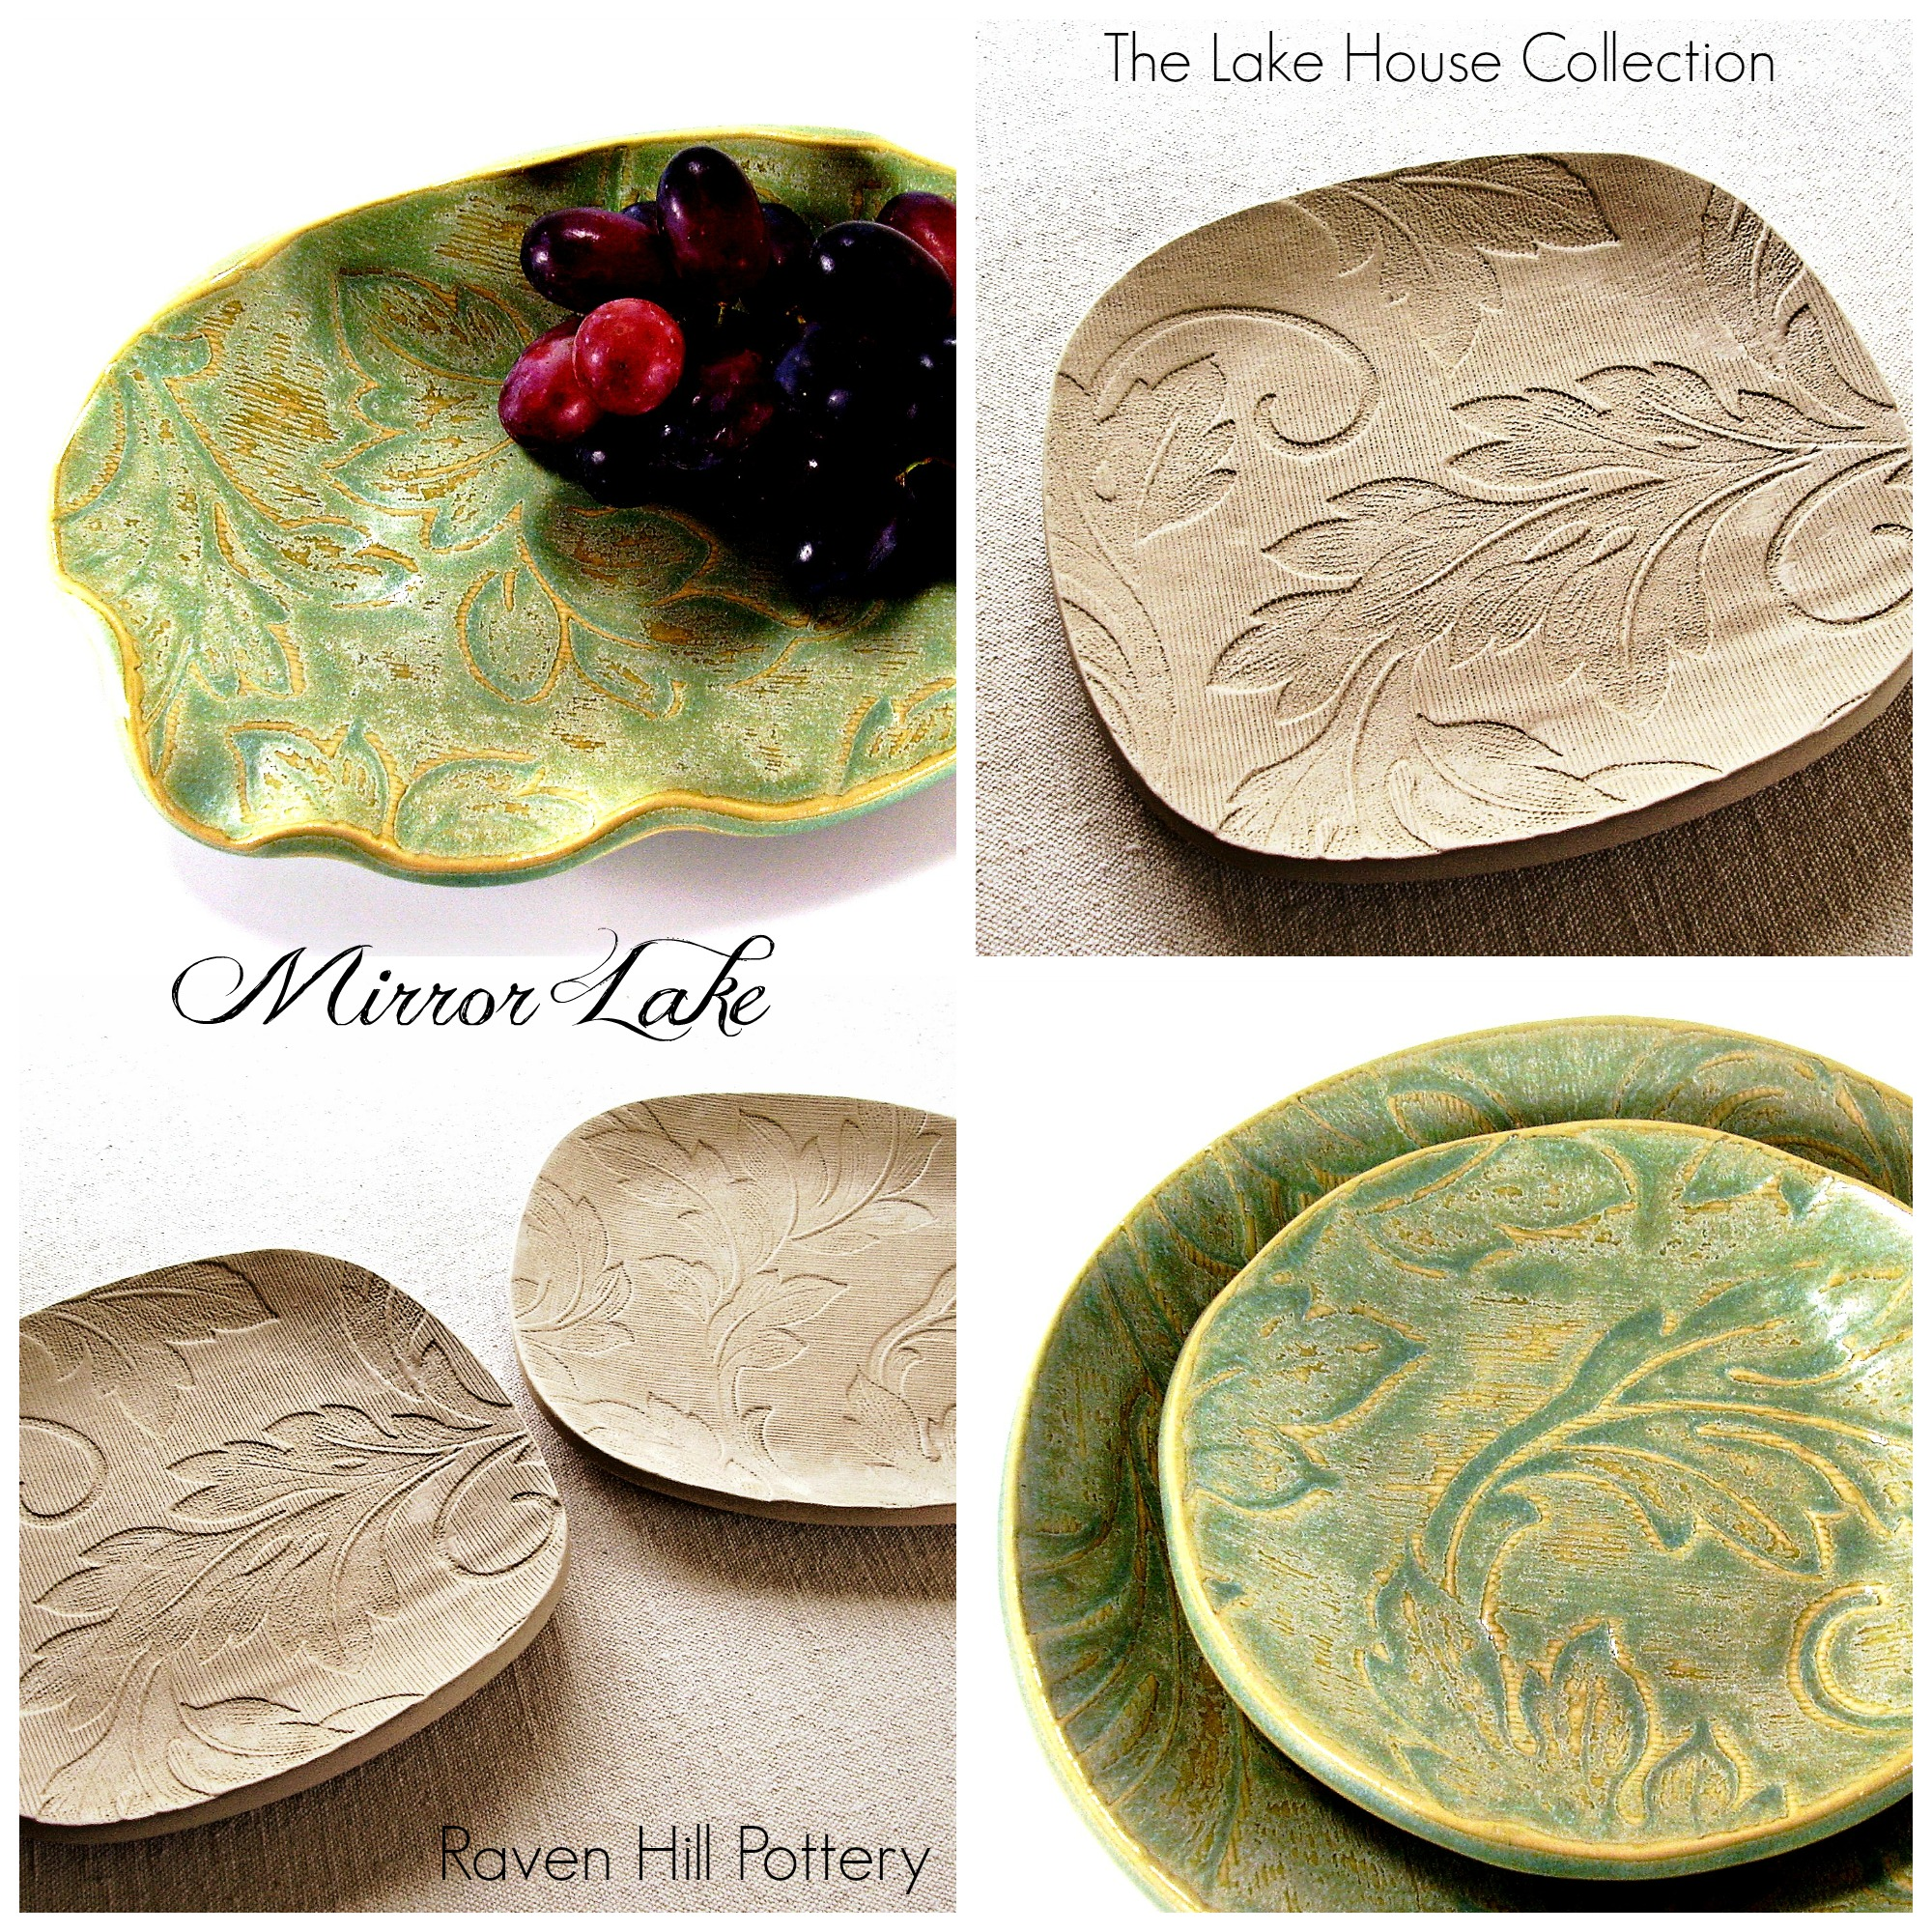 mirror lake the lake house collection by melinda marie alexander from ravenhillpottery.etsy.comjpg